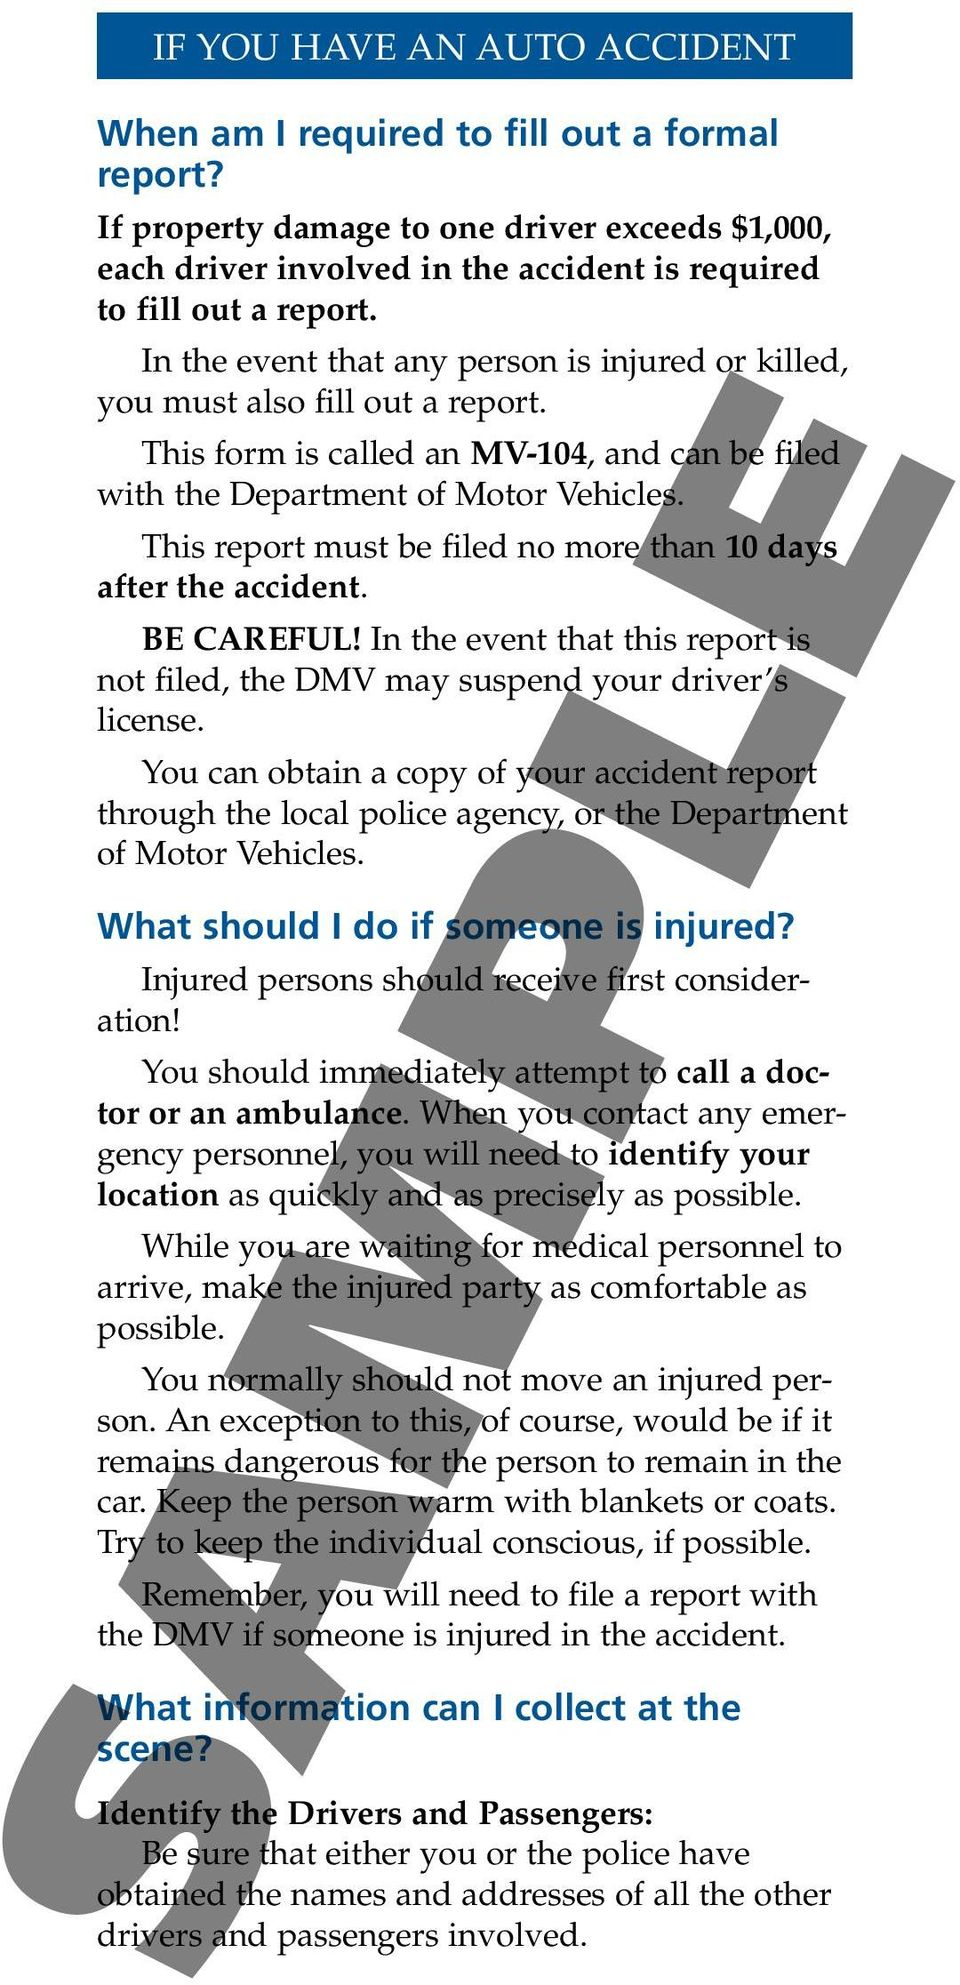 This report must be filed no more than 10 days after the accident. BE CAREFUL! In the event that this report is not filed, the DMV may suspend your driver s license.